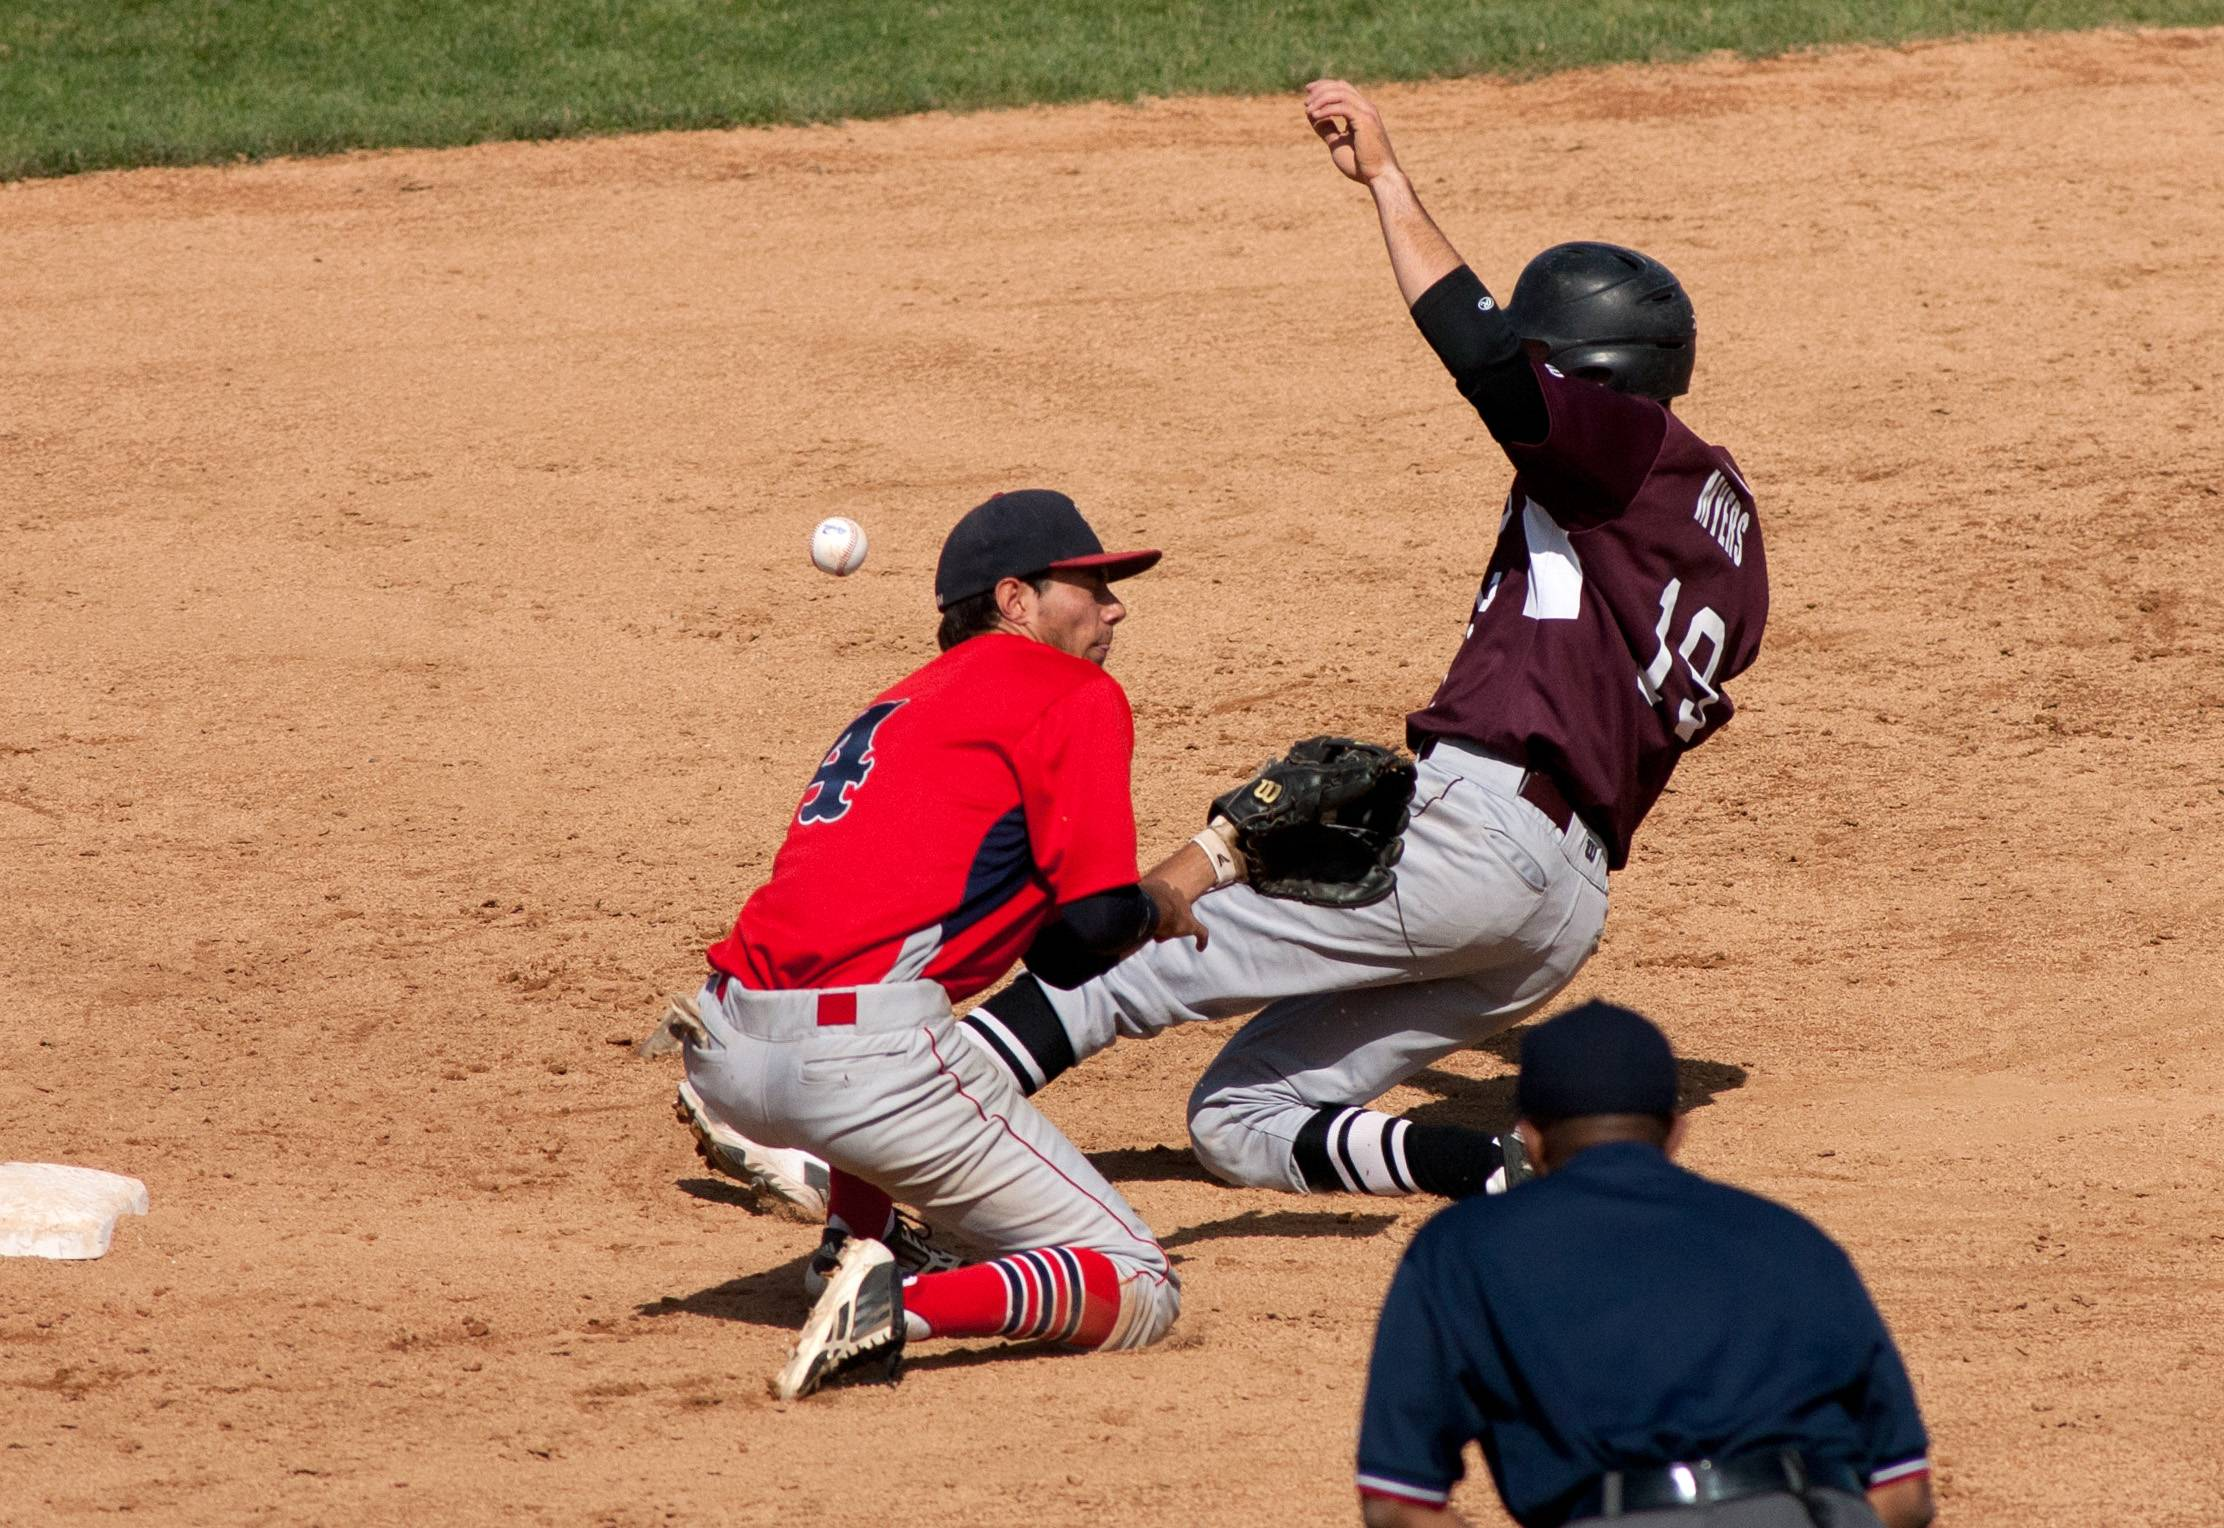 Prairie Ridge's John Myers slides safely into second base past South Elgin's Dane Toppel, during the class 4A state baseball third place consolation game at Silver Cross Field in Joliet.